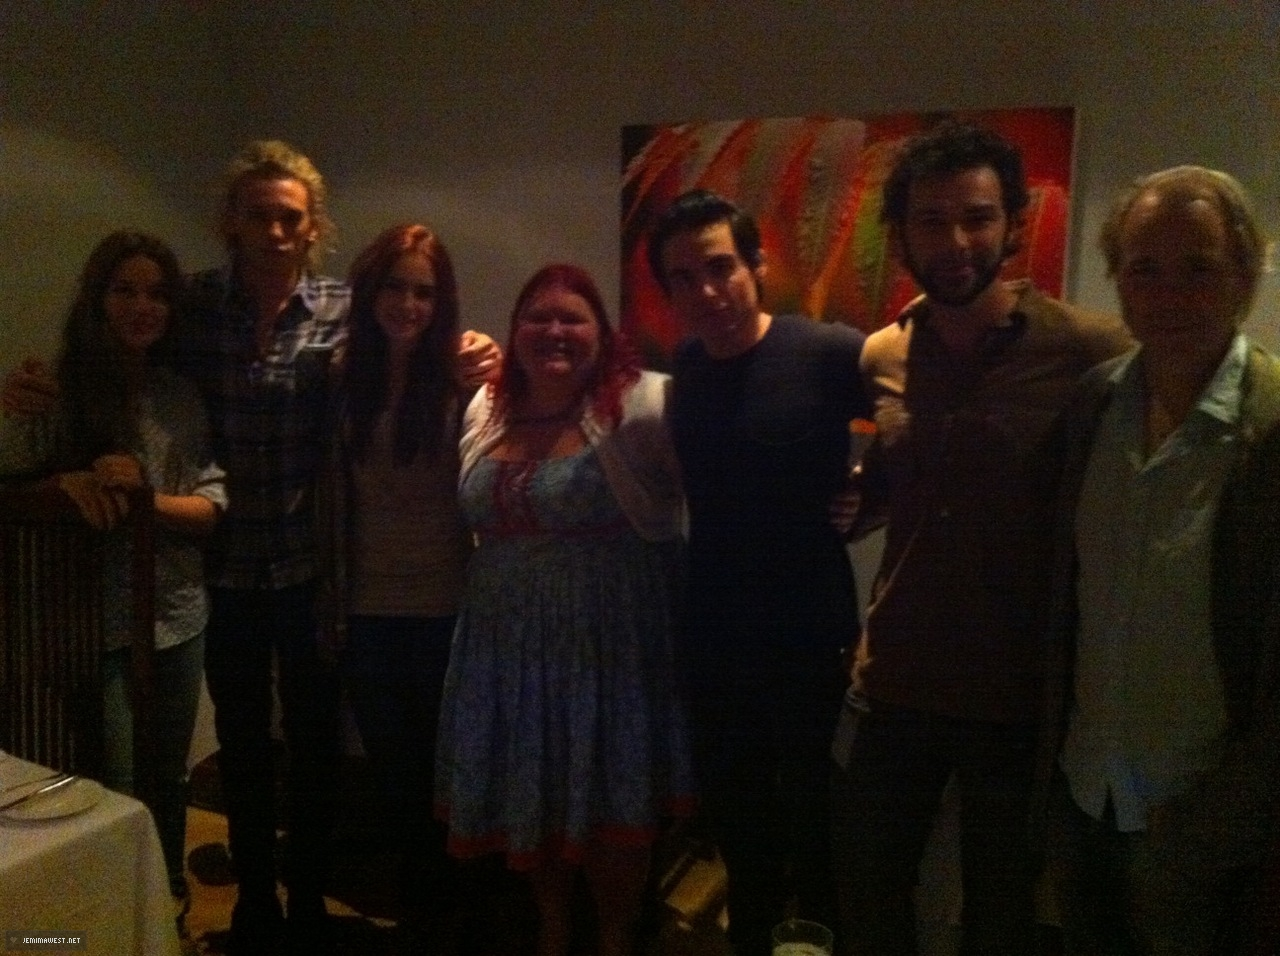 Having dinner with cast and director of TMI and Cassandra Clare (August 16, 2012) - jemima-west Photo